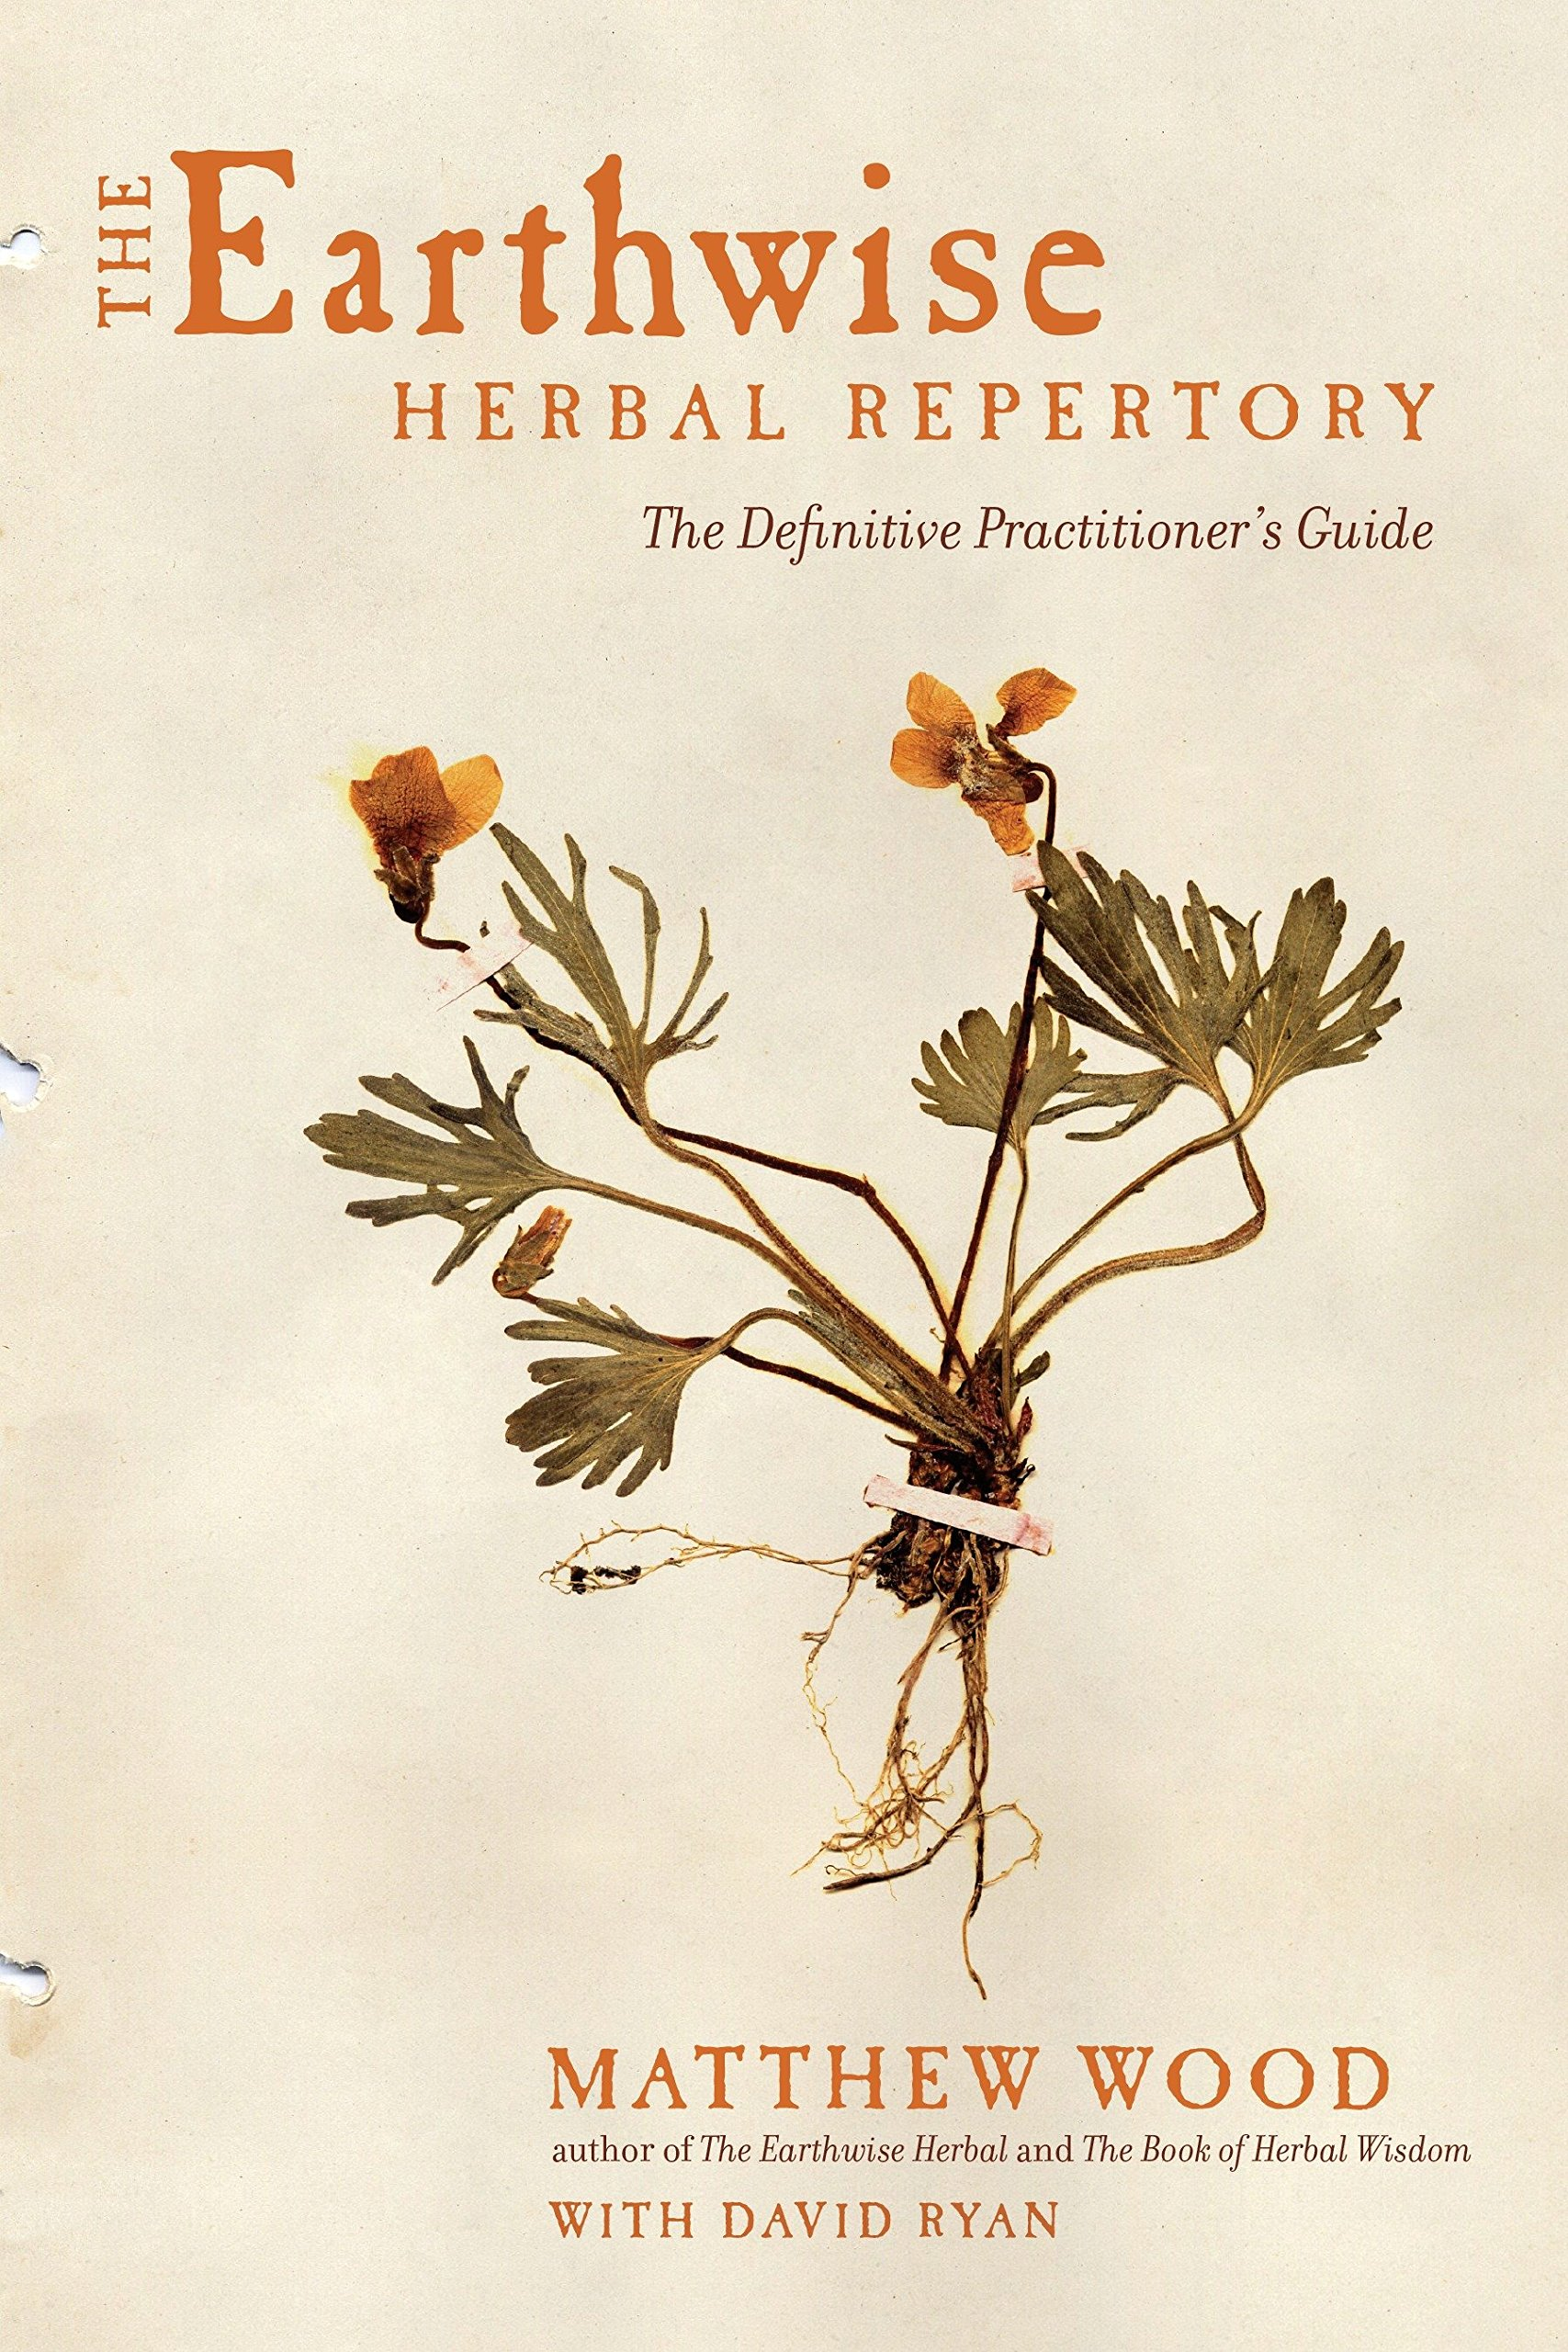 Download The Earthwise Herbal Repertory: The Definitive Practitioner's Guide ebook